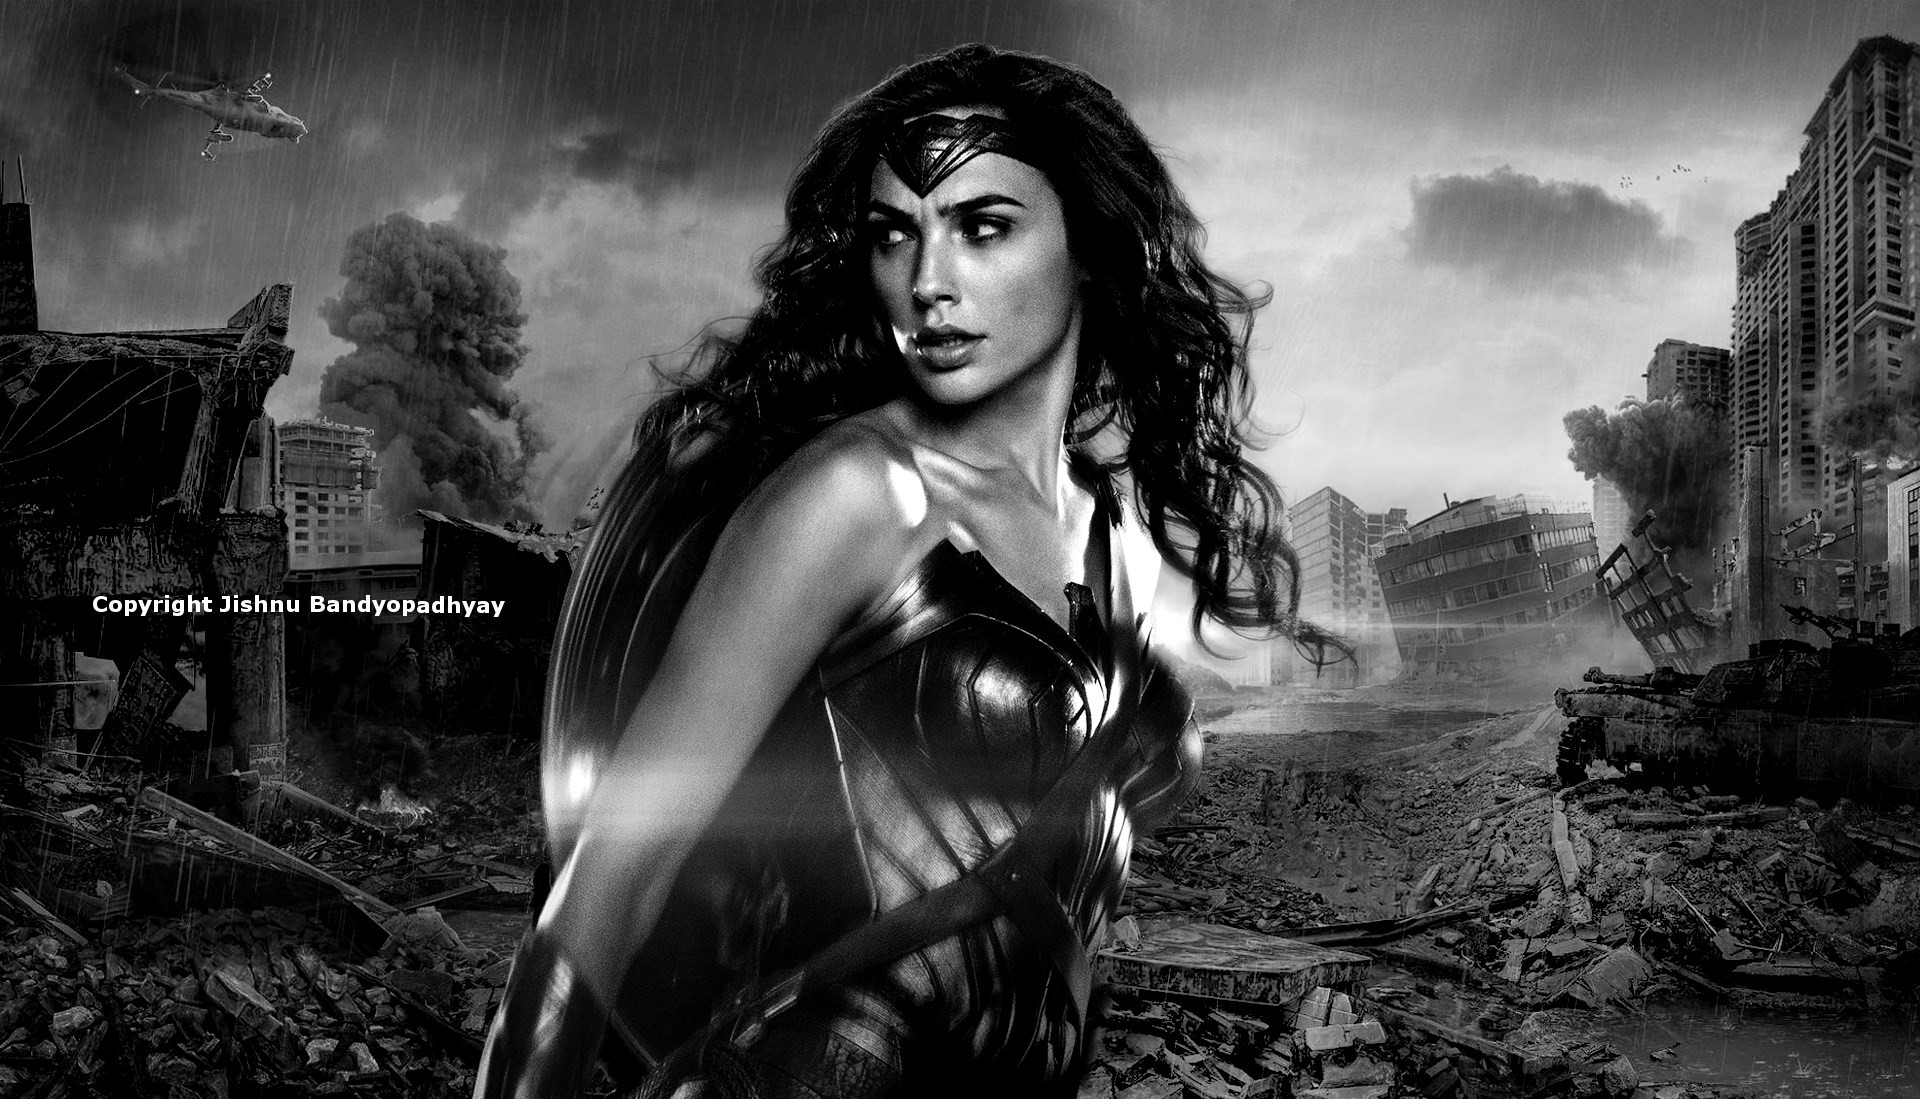 1080x1920 Another Gal Gadot Wonder Woman 3d Wall Paper1920X1080 Need IPhone 6S Plus Wallpaper Background For IPhone6SPlus Follow